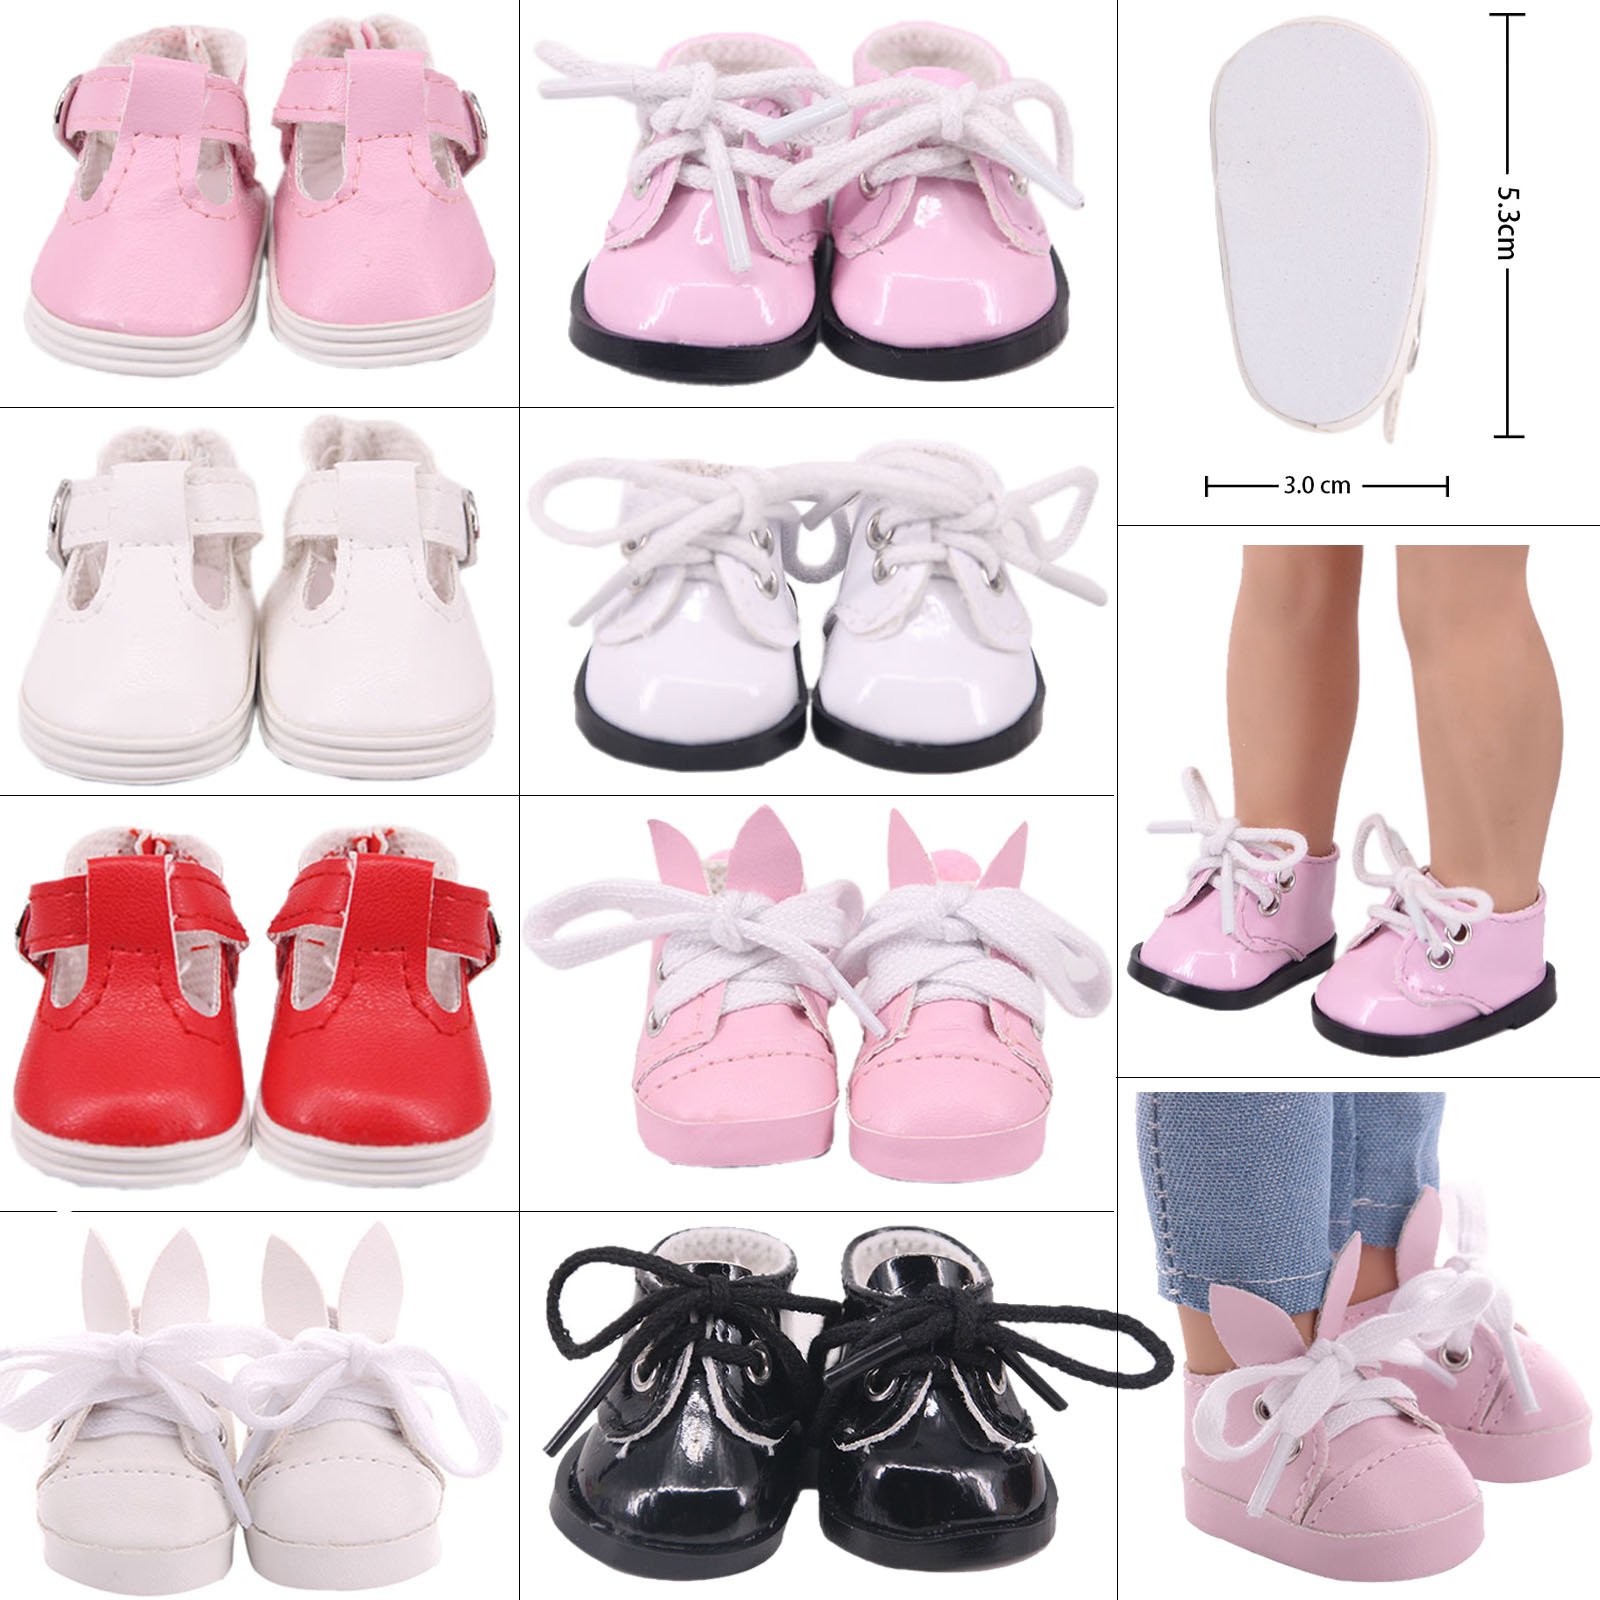 1/6 BJD Blythe 5cm Doll Shoes Canvas Cartoon PU Shoes For 14.5 Inch American Doll&1/6 BJD Blythe EXO Doll Boots Doll Girl`s Toy